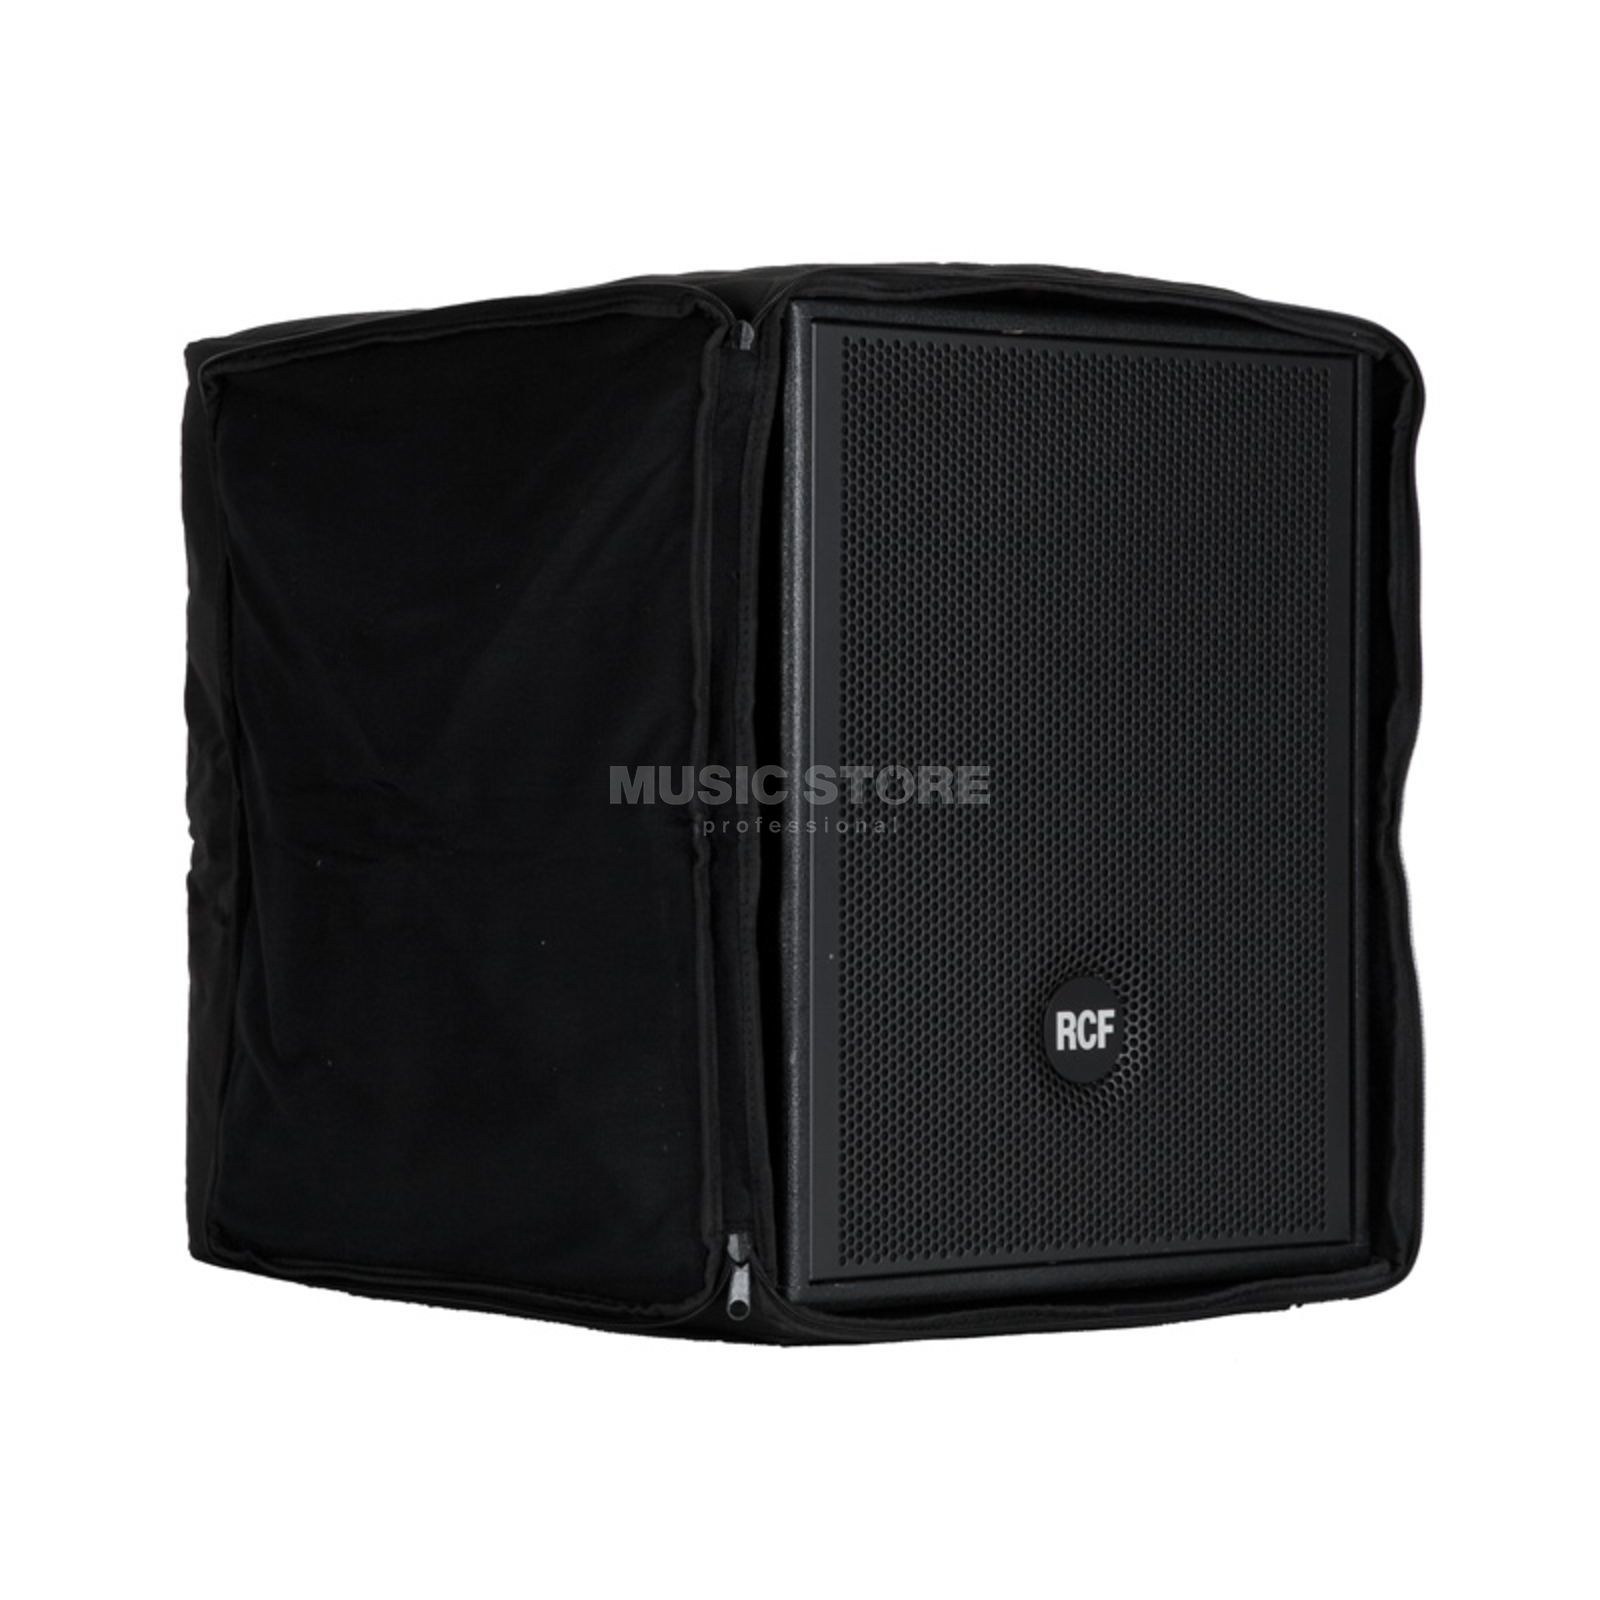 RCF ART Cover 905 black Produktbillede